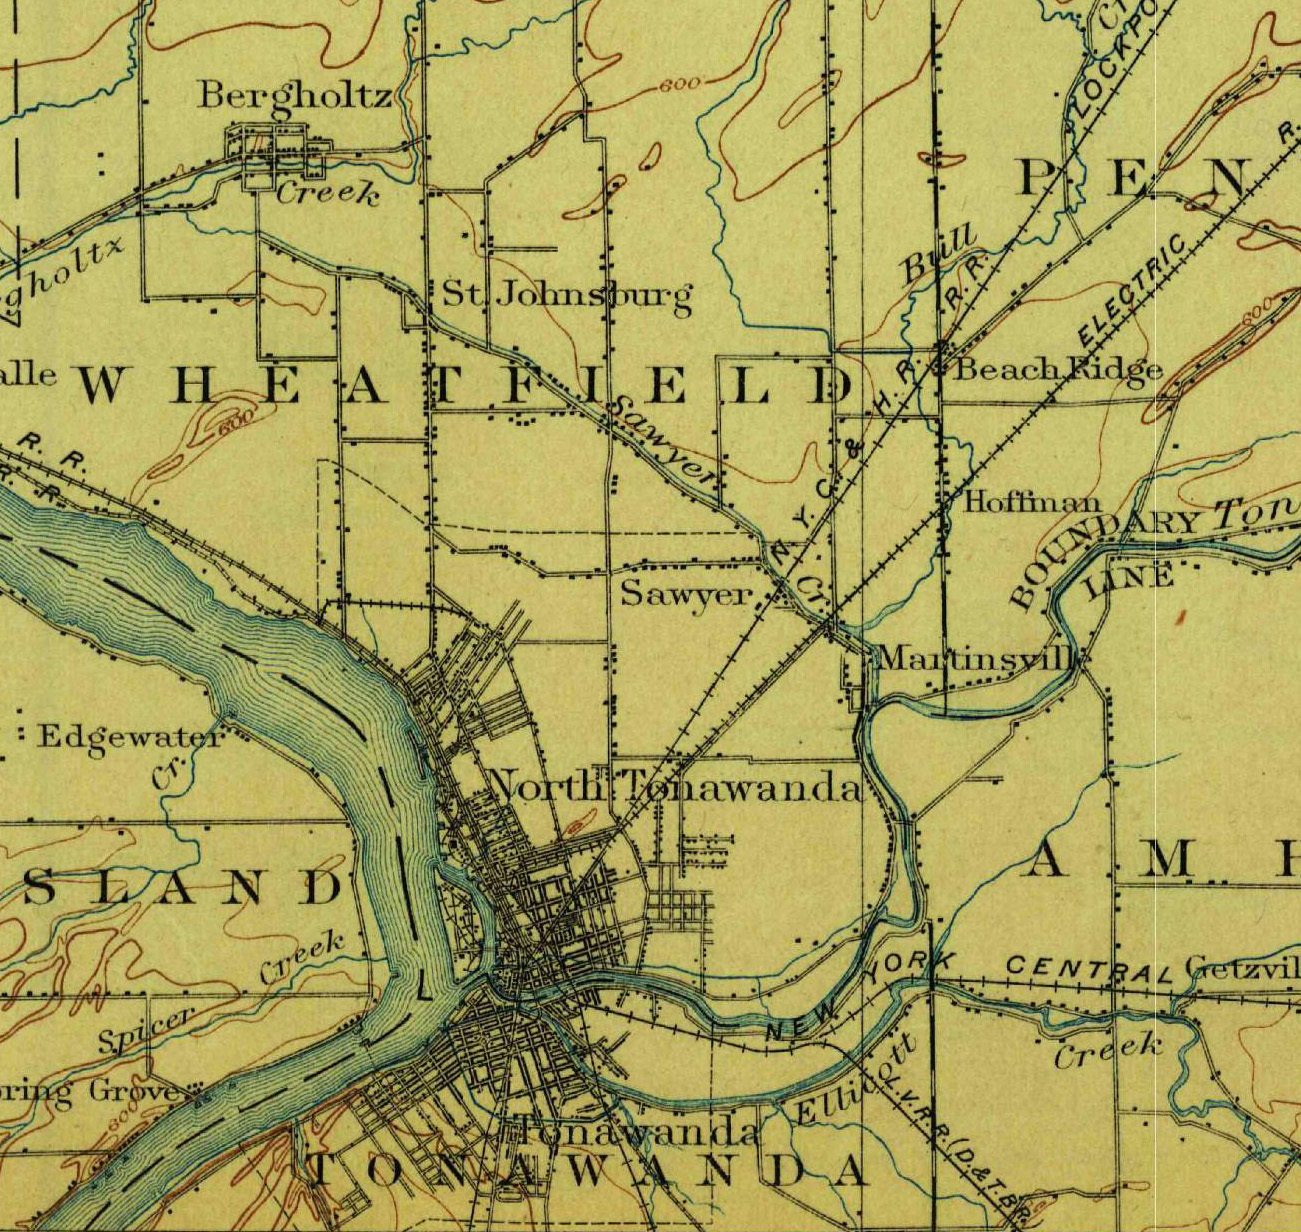 Wheatfield, Sawyer, Martinsville, topographical map (1899).jpg